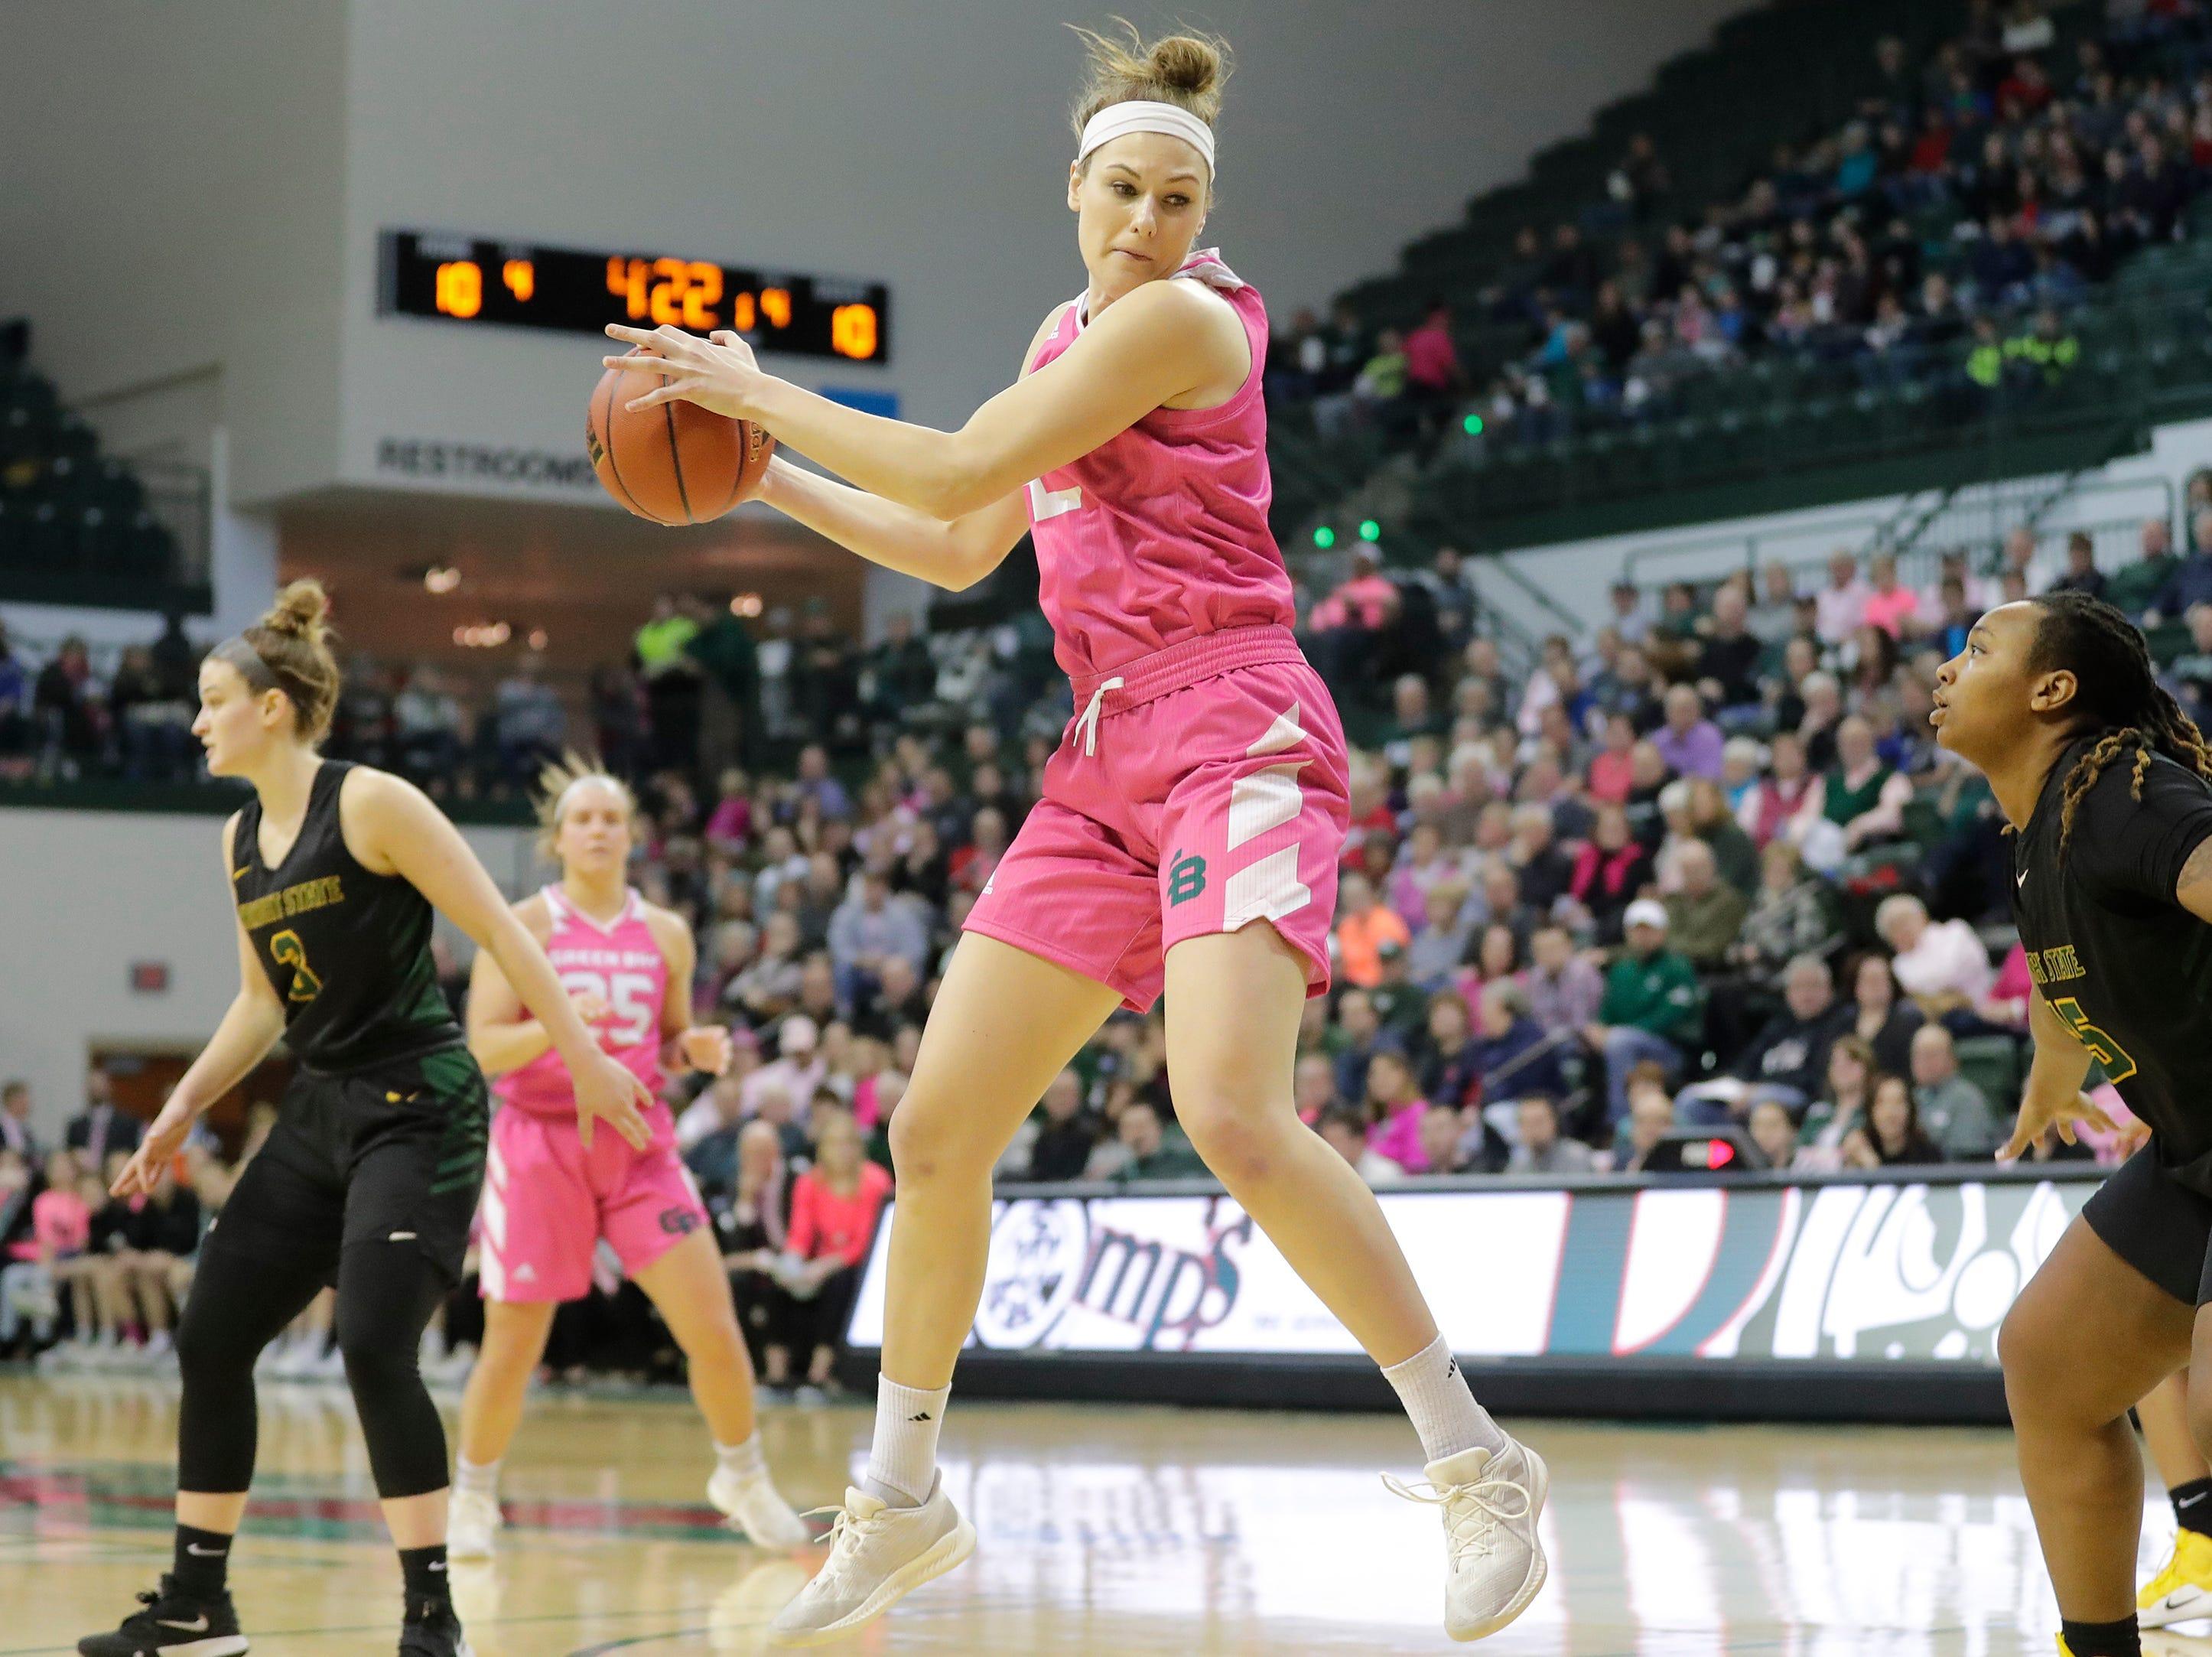 Green Bay Phoenix forward/center Mackenzie Wolf (42) catches a pass against the Wright State Raiders in a Horizon League women's basketball game at the Kress Center on Saturday, February 9, 2019 in Green Bay, Wis.